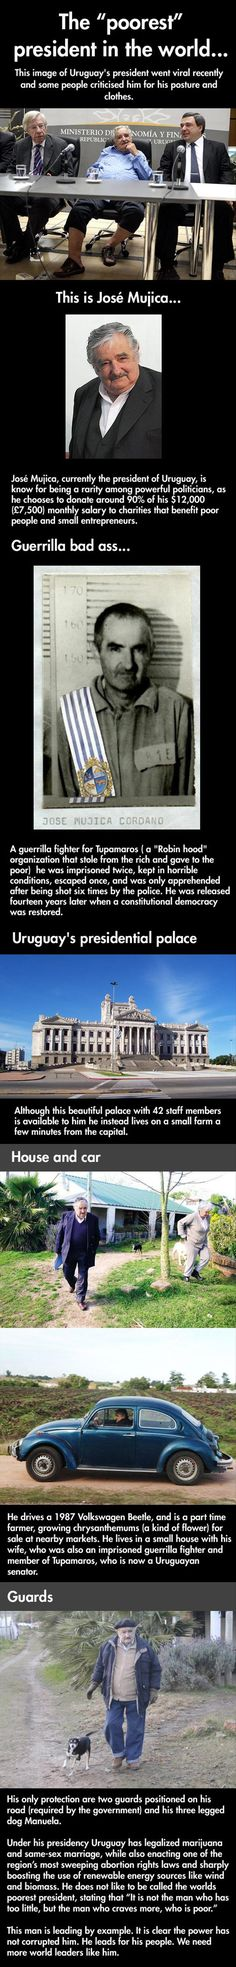 The President Of Uruguay